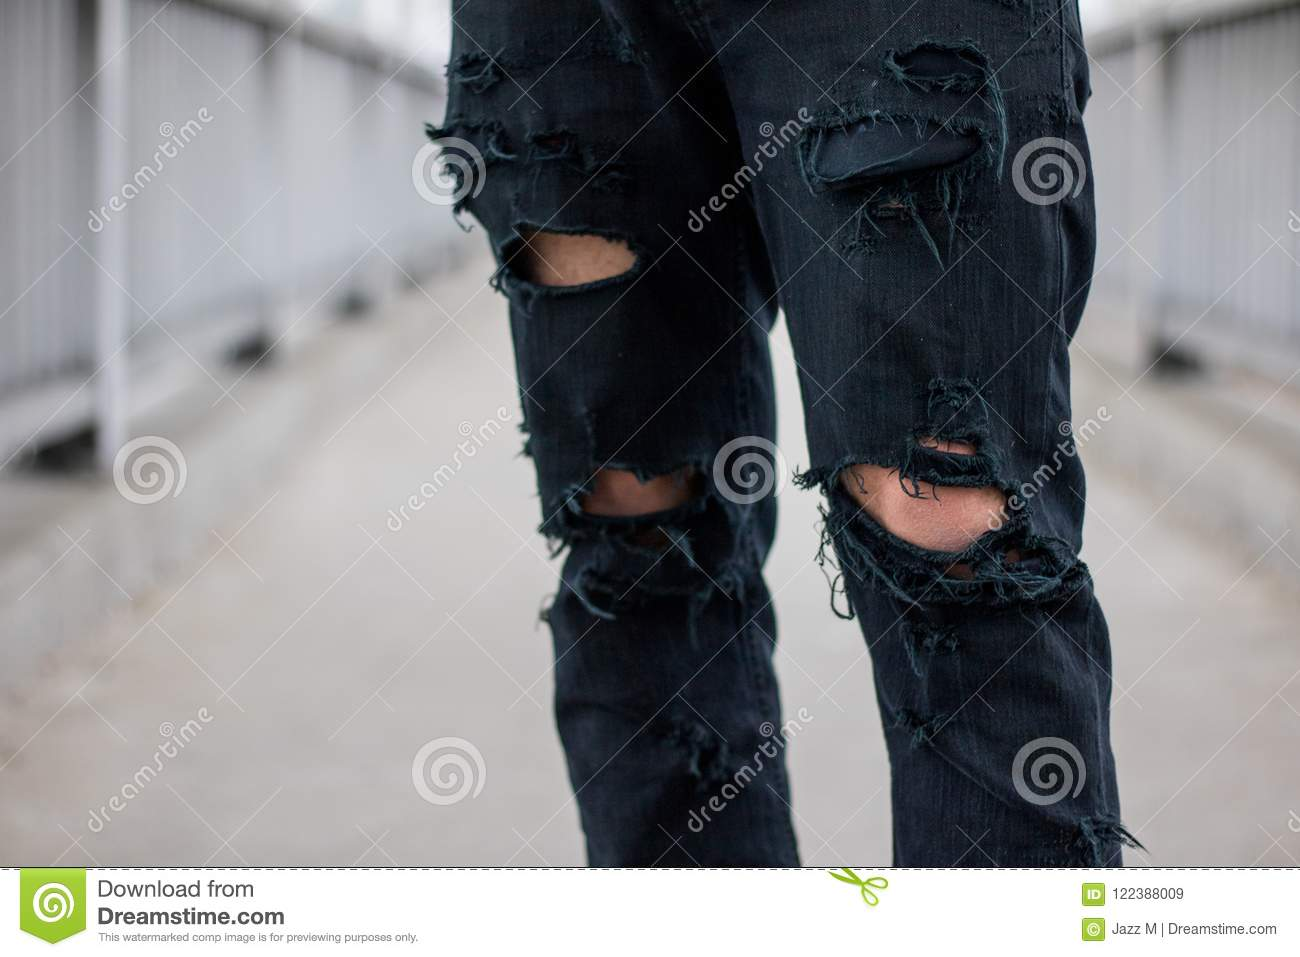 57637a586bc Lower Half Of Body, Man Wearing Ripped Black Jeans Stock Image ...